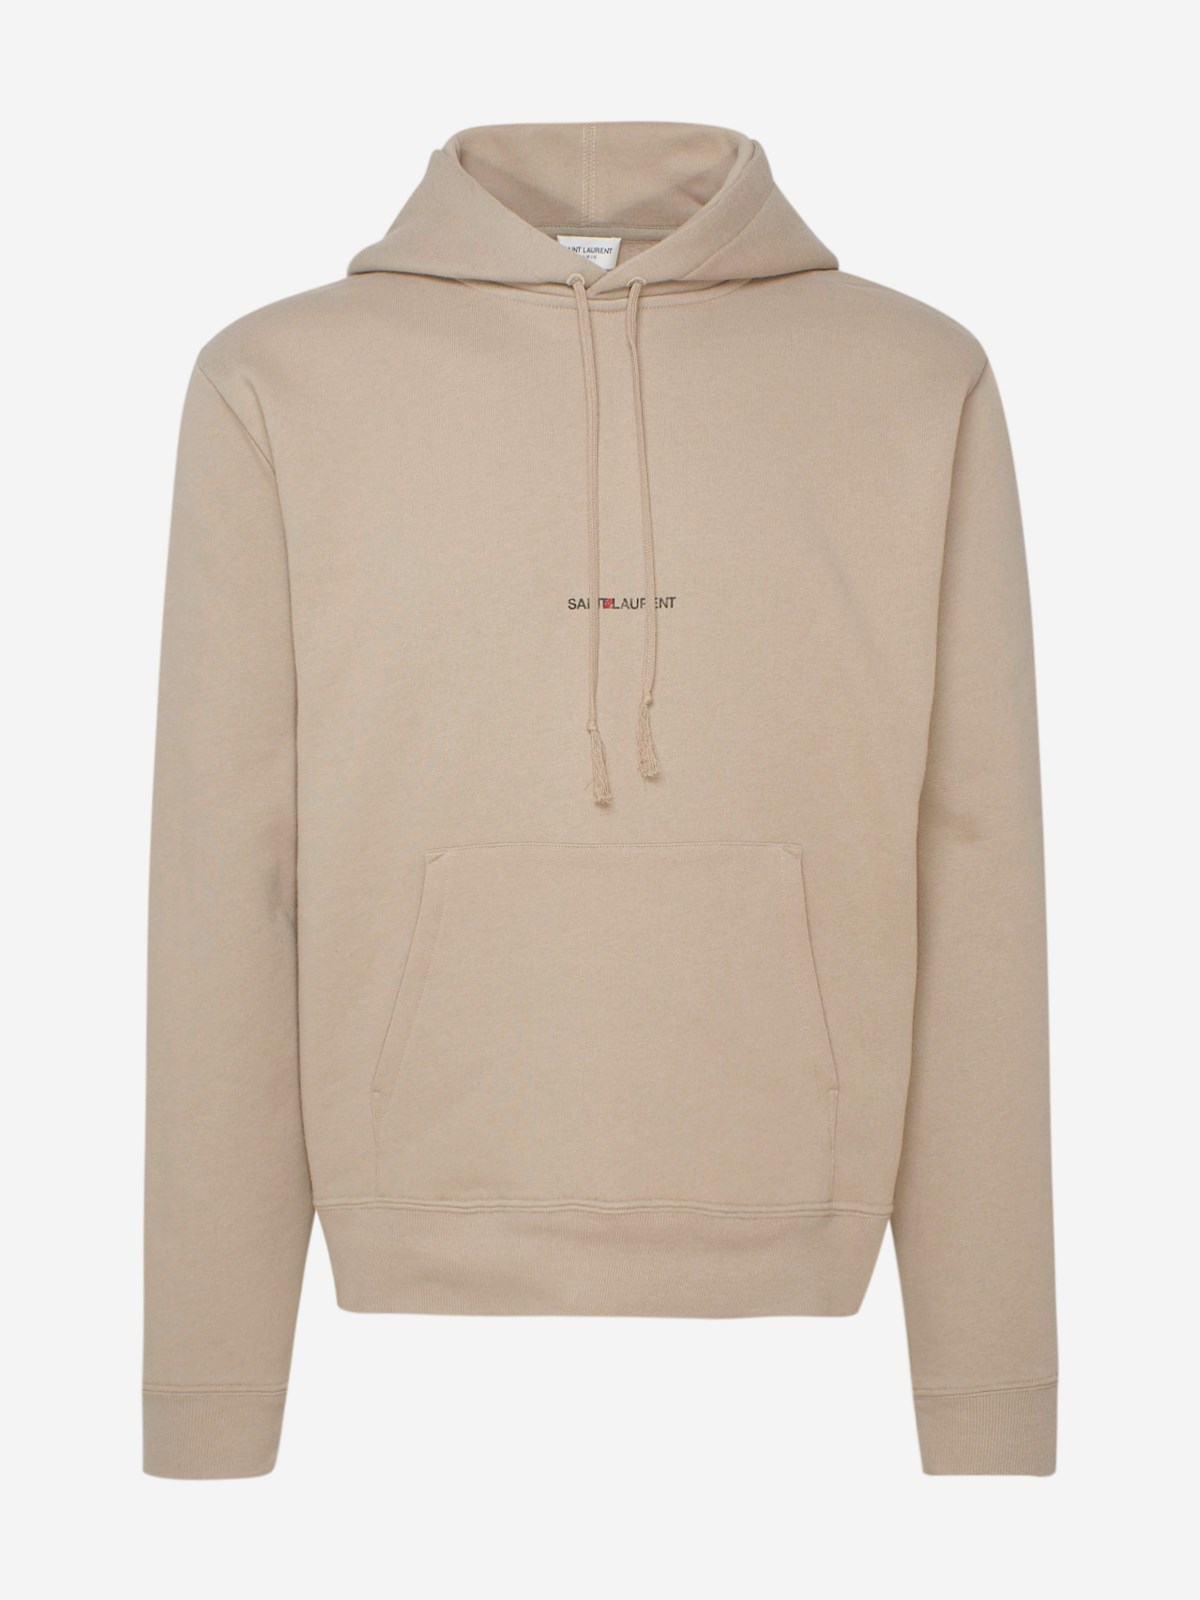 Saint Laurent BEIGE SWEATSHIRT